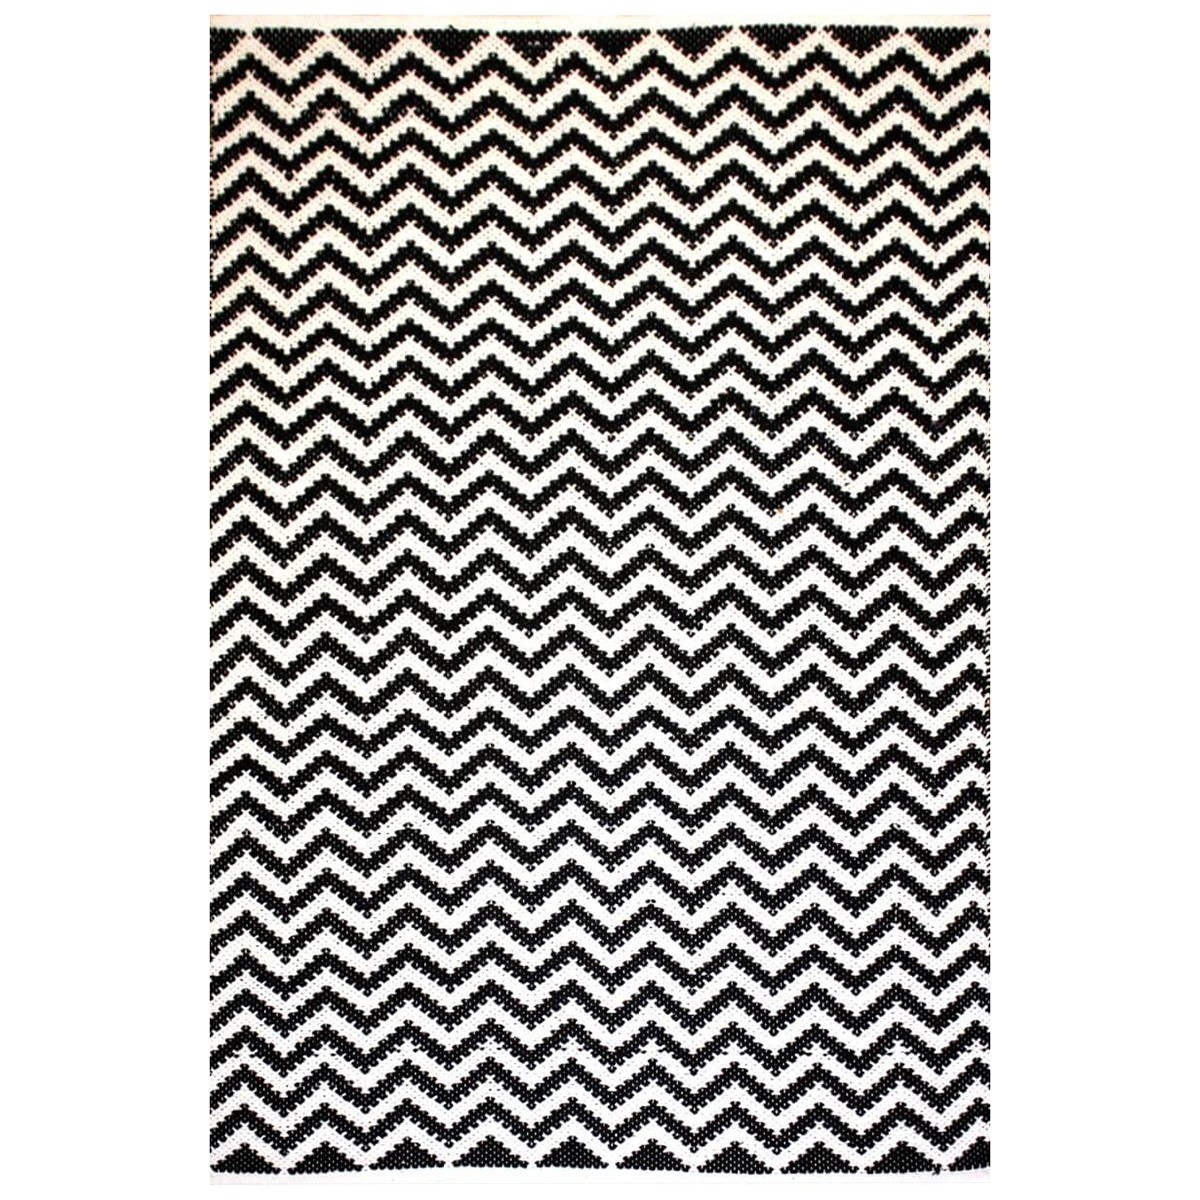 Parker Handwoven Chevron Cotton Rug, 130x70cm, Black / White